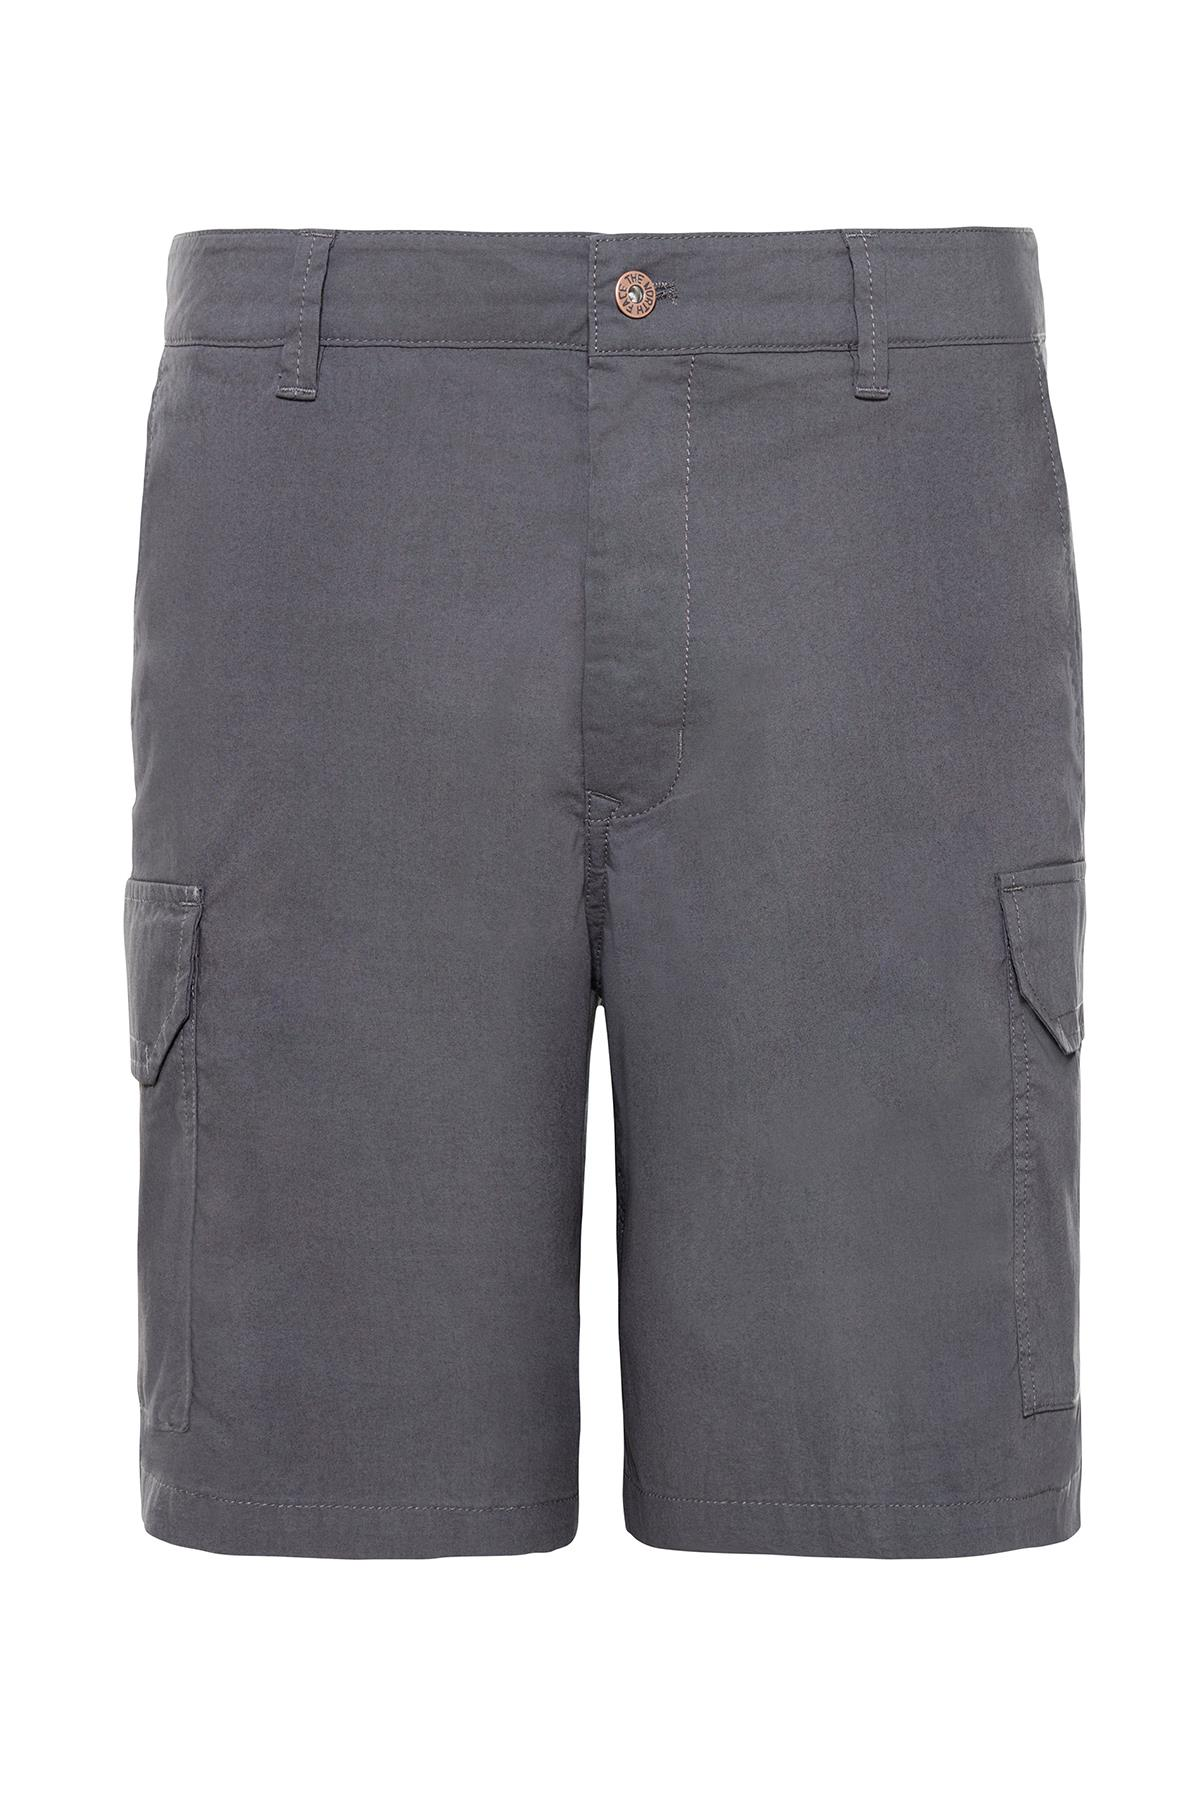 The Northface Erkek Junction Short T93T1X0C5 Şort